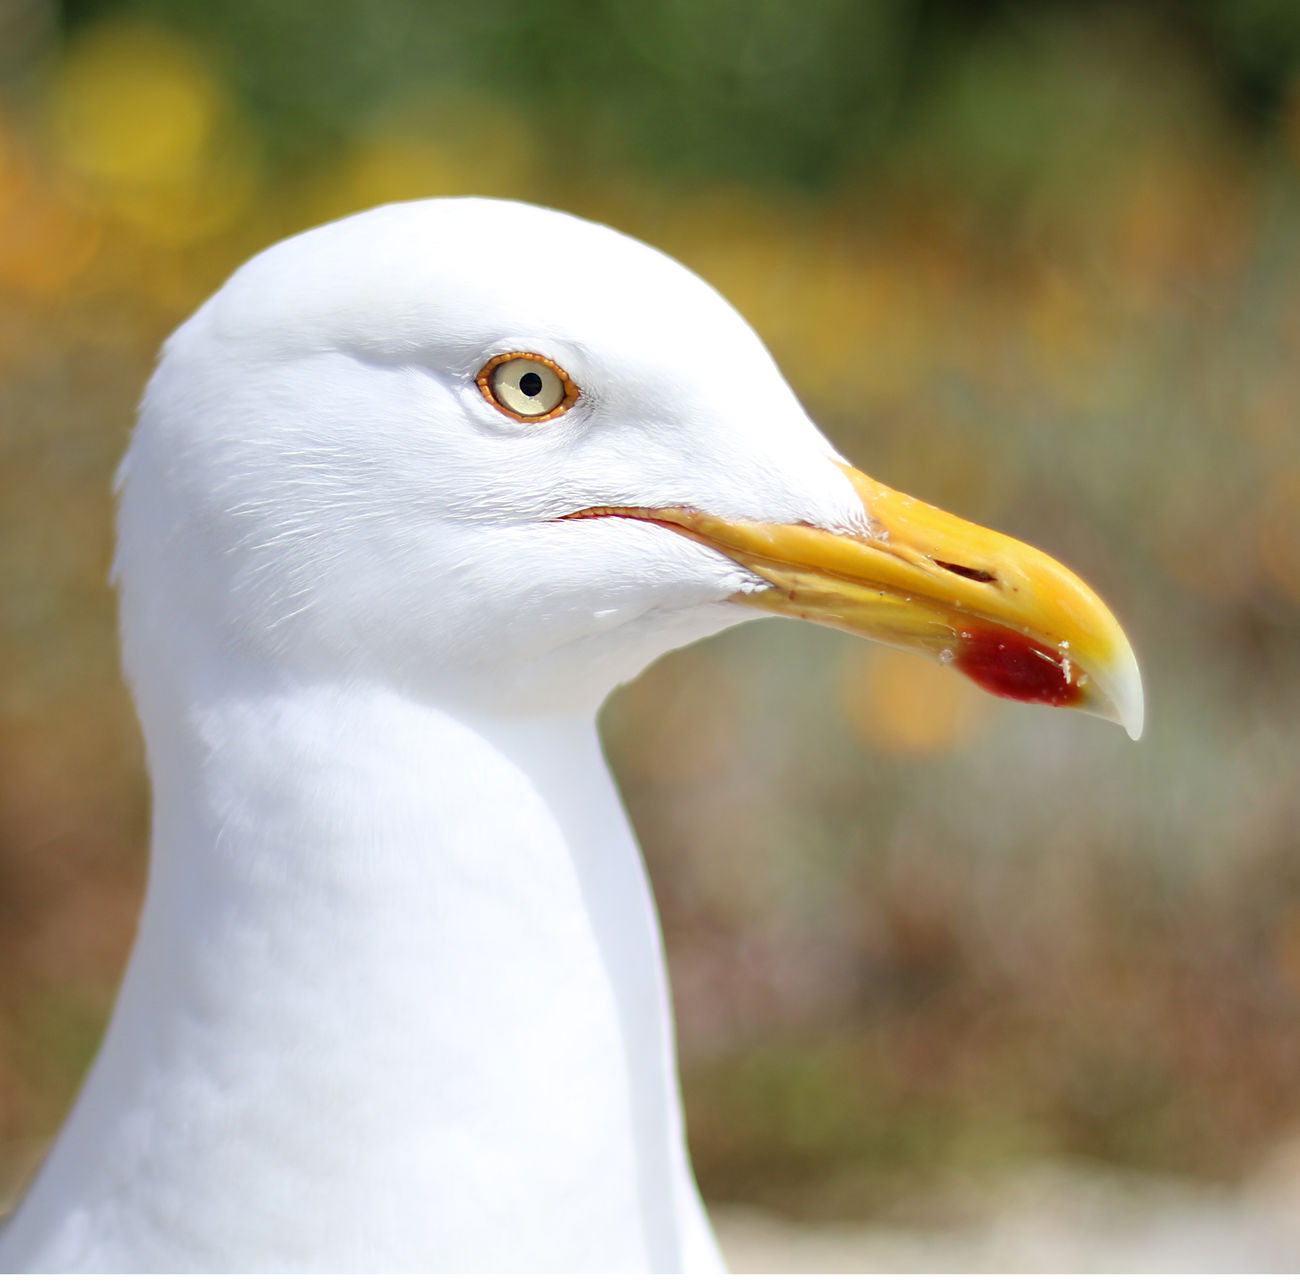 Gull Portrait Animal Themes Animal Wildlife Animals In The Wild Beak Bird Close-up Day Focus On Foreground Nature No People One Animal Outdoors